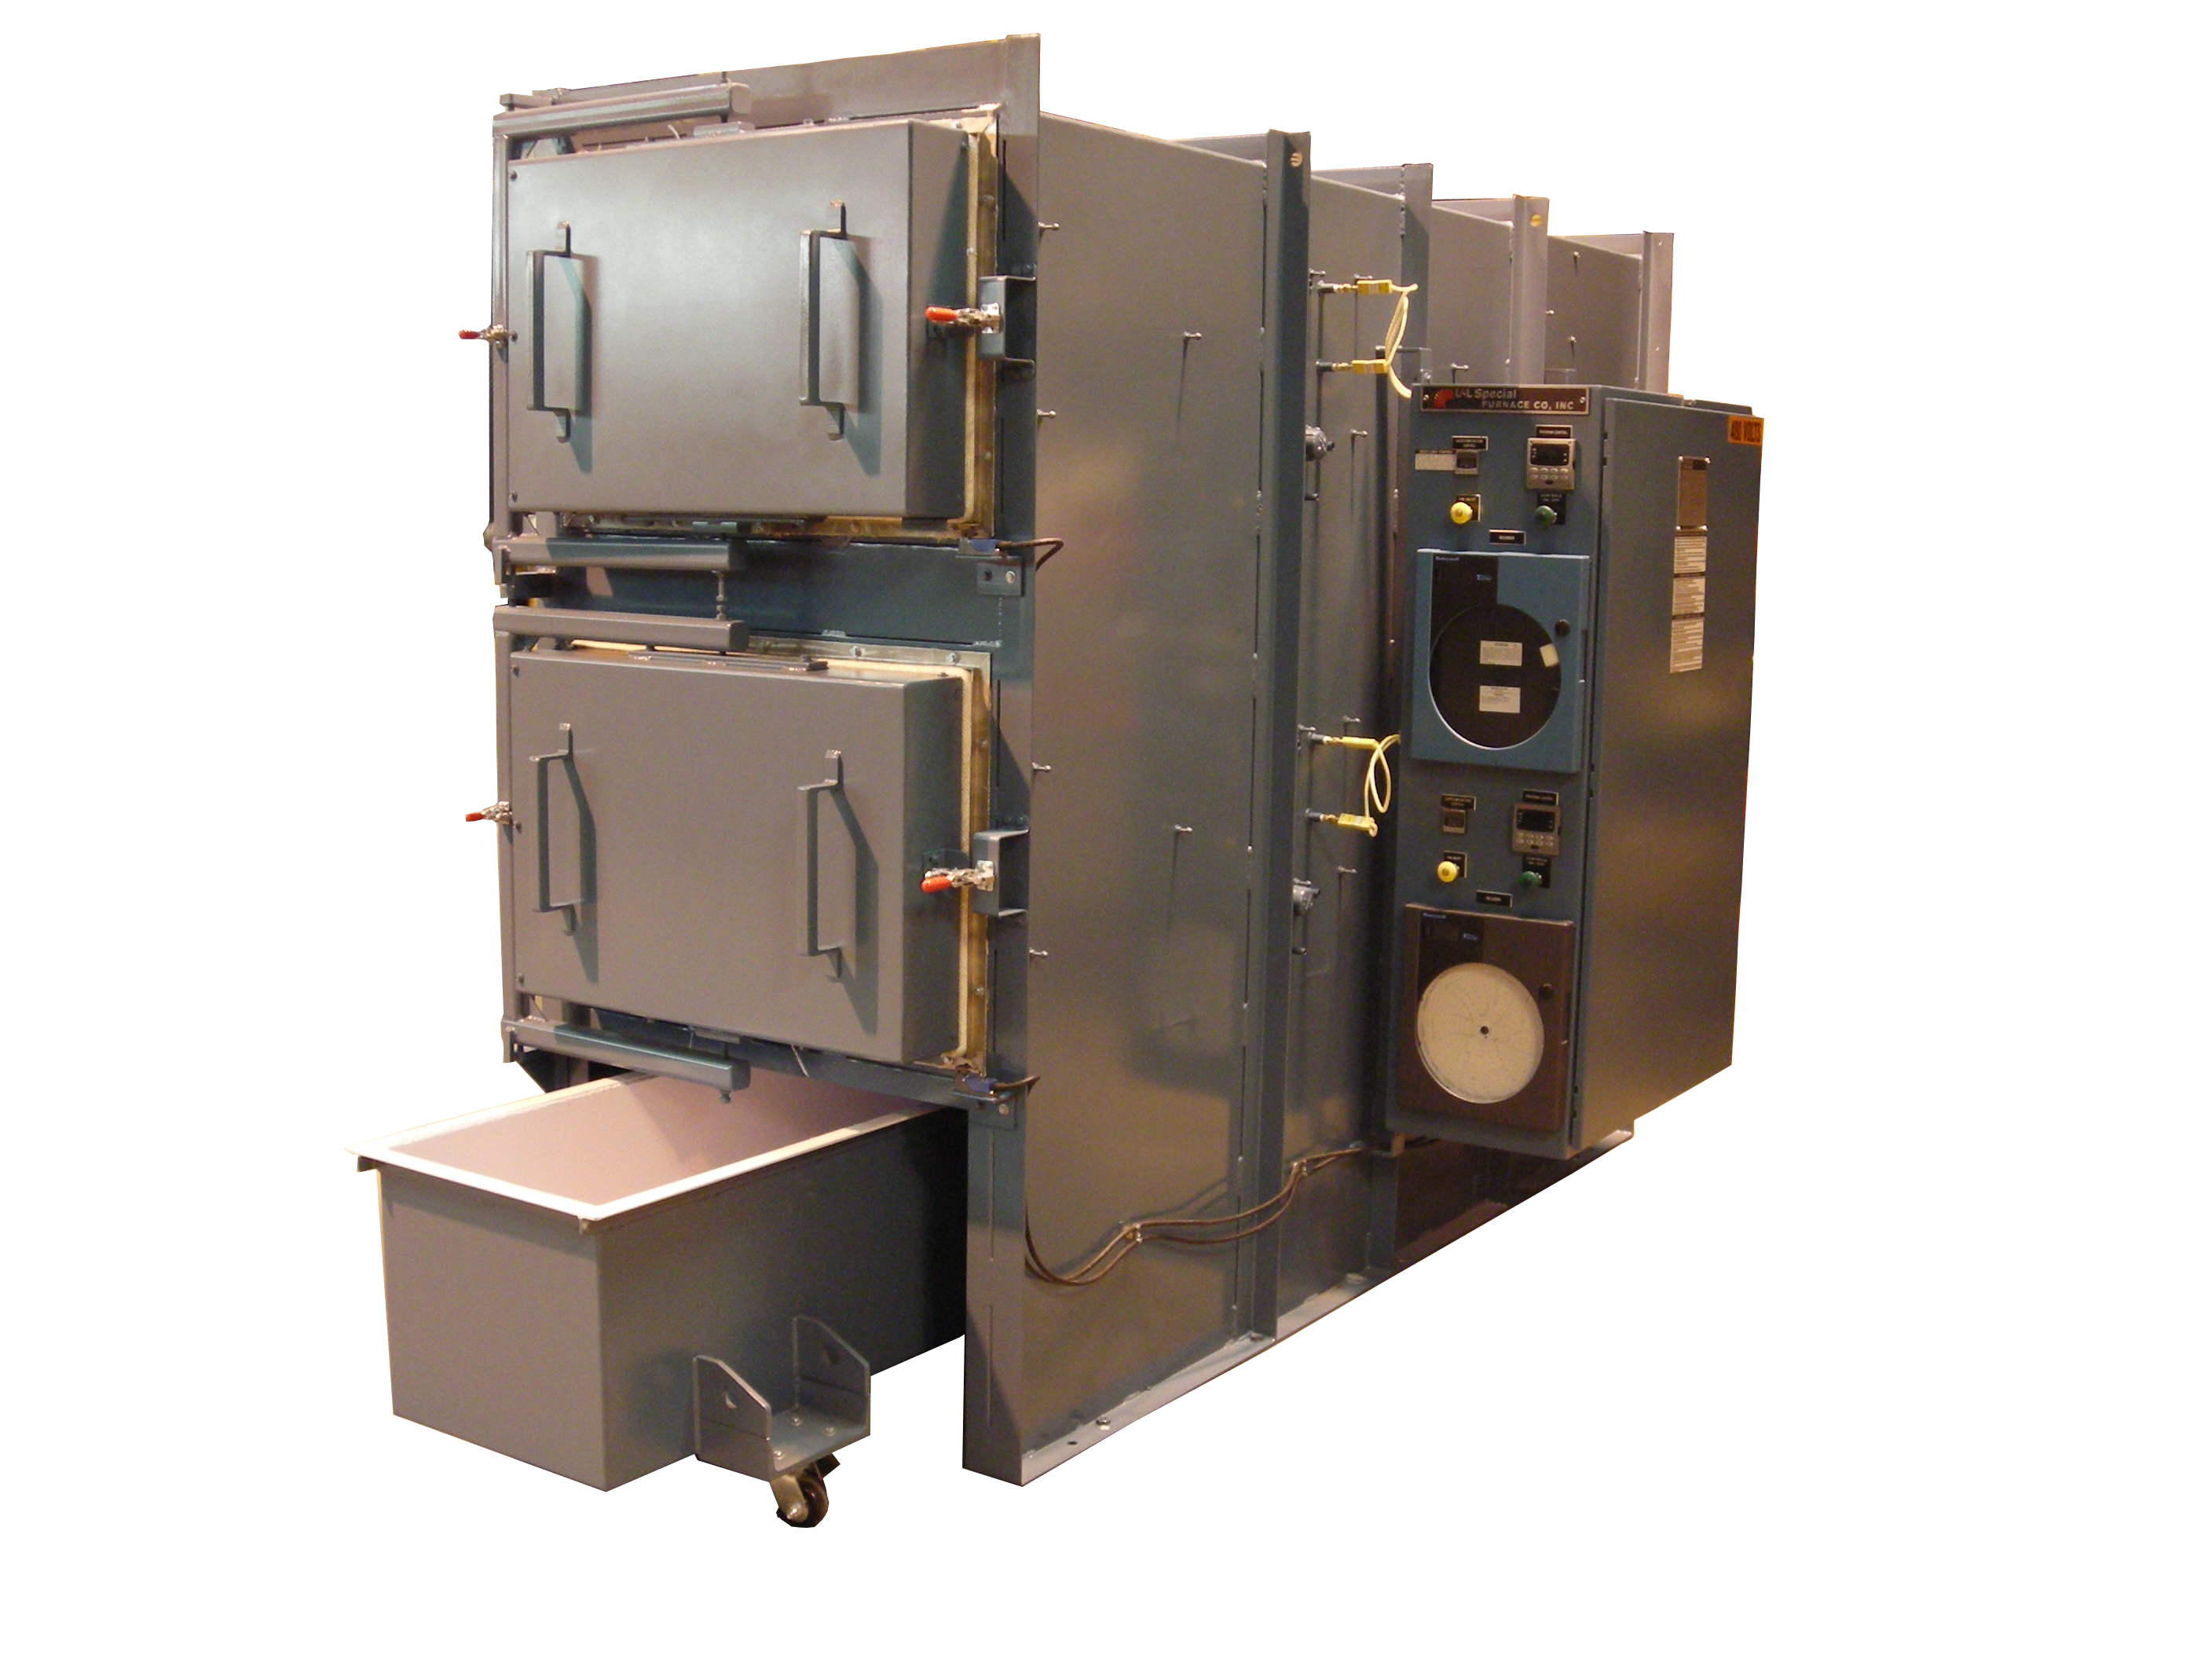 heat treating furnace for aluminum alloys